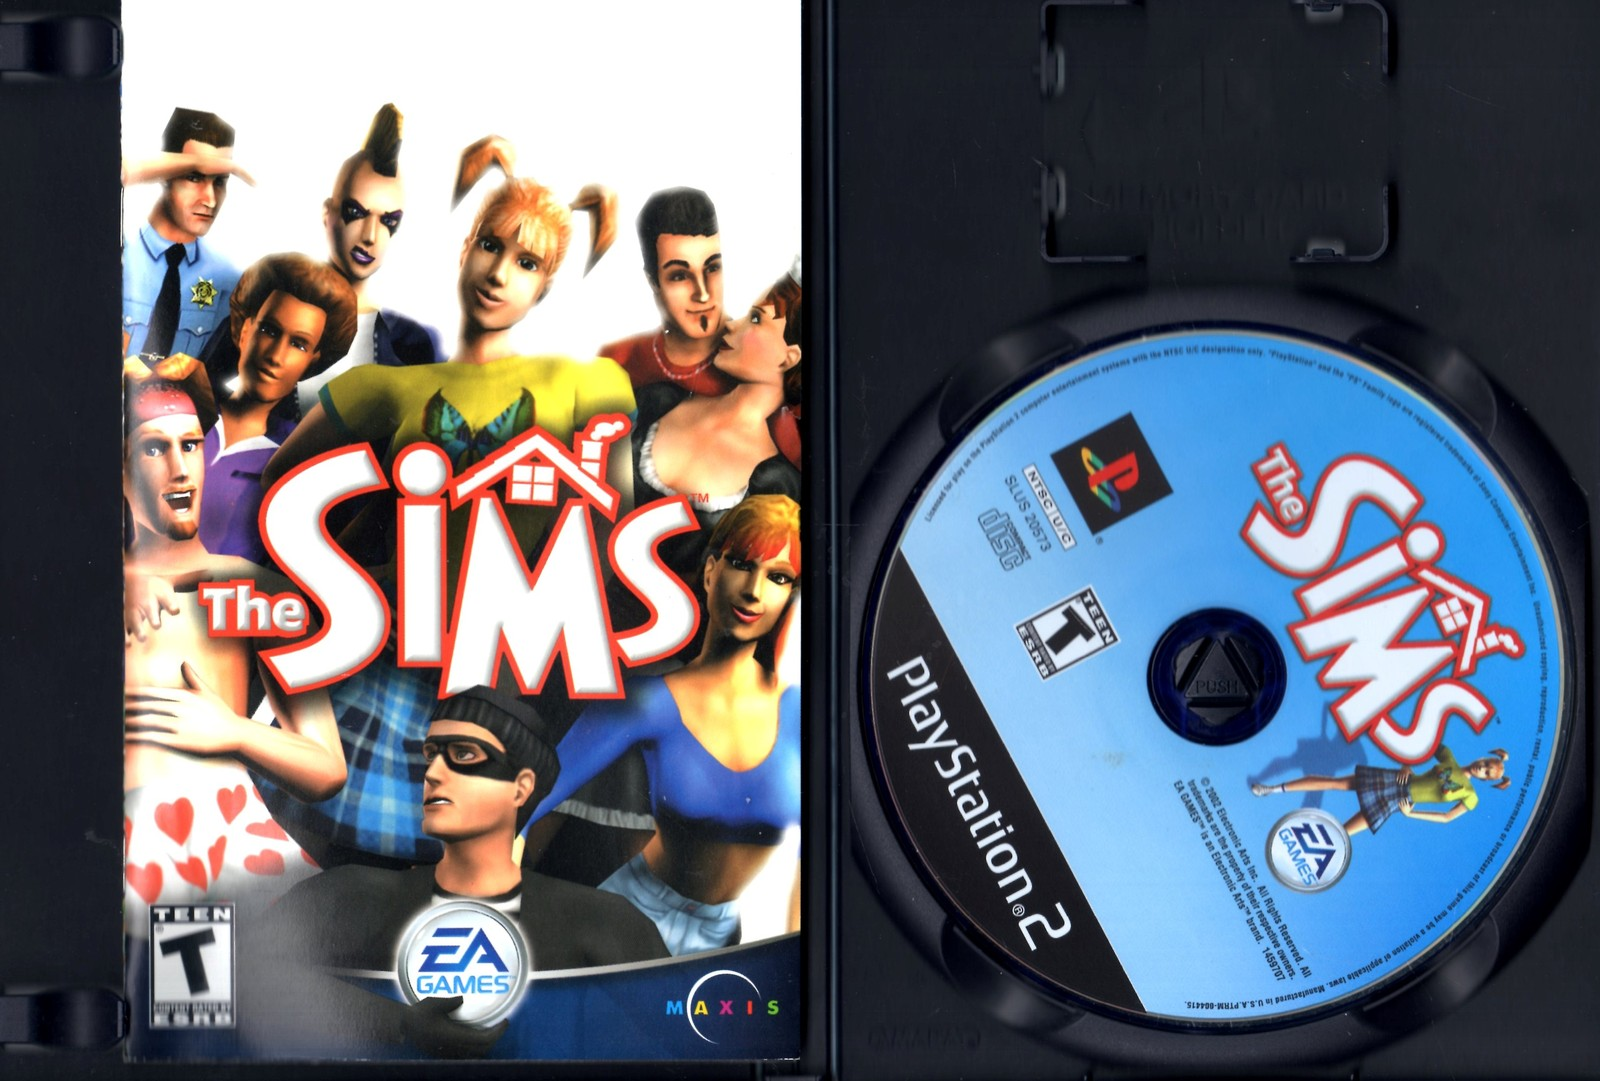 PlayStation 2 - The Sims (Complete with Instructions)